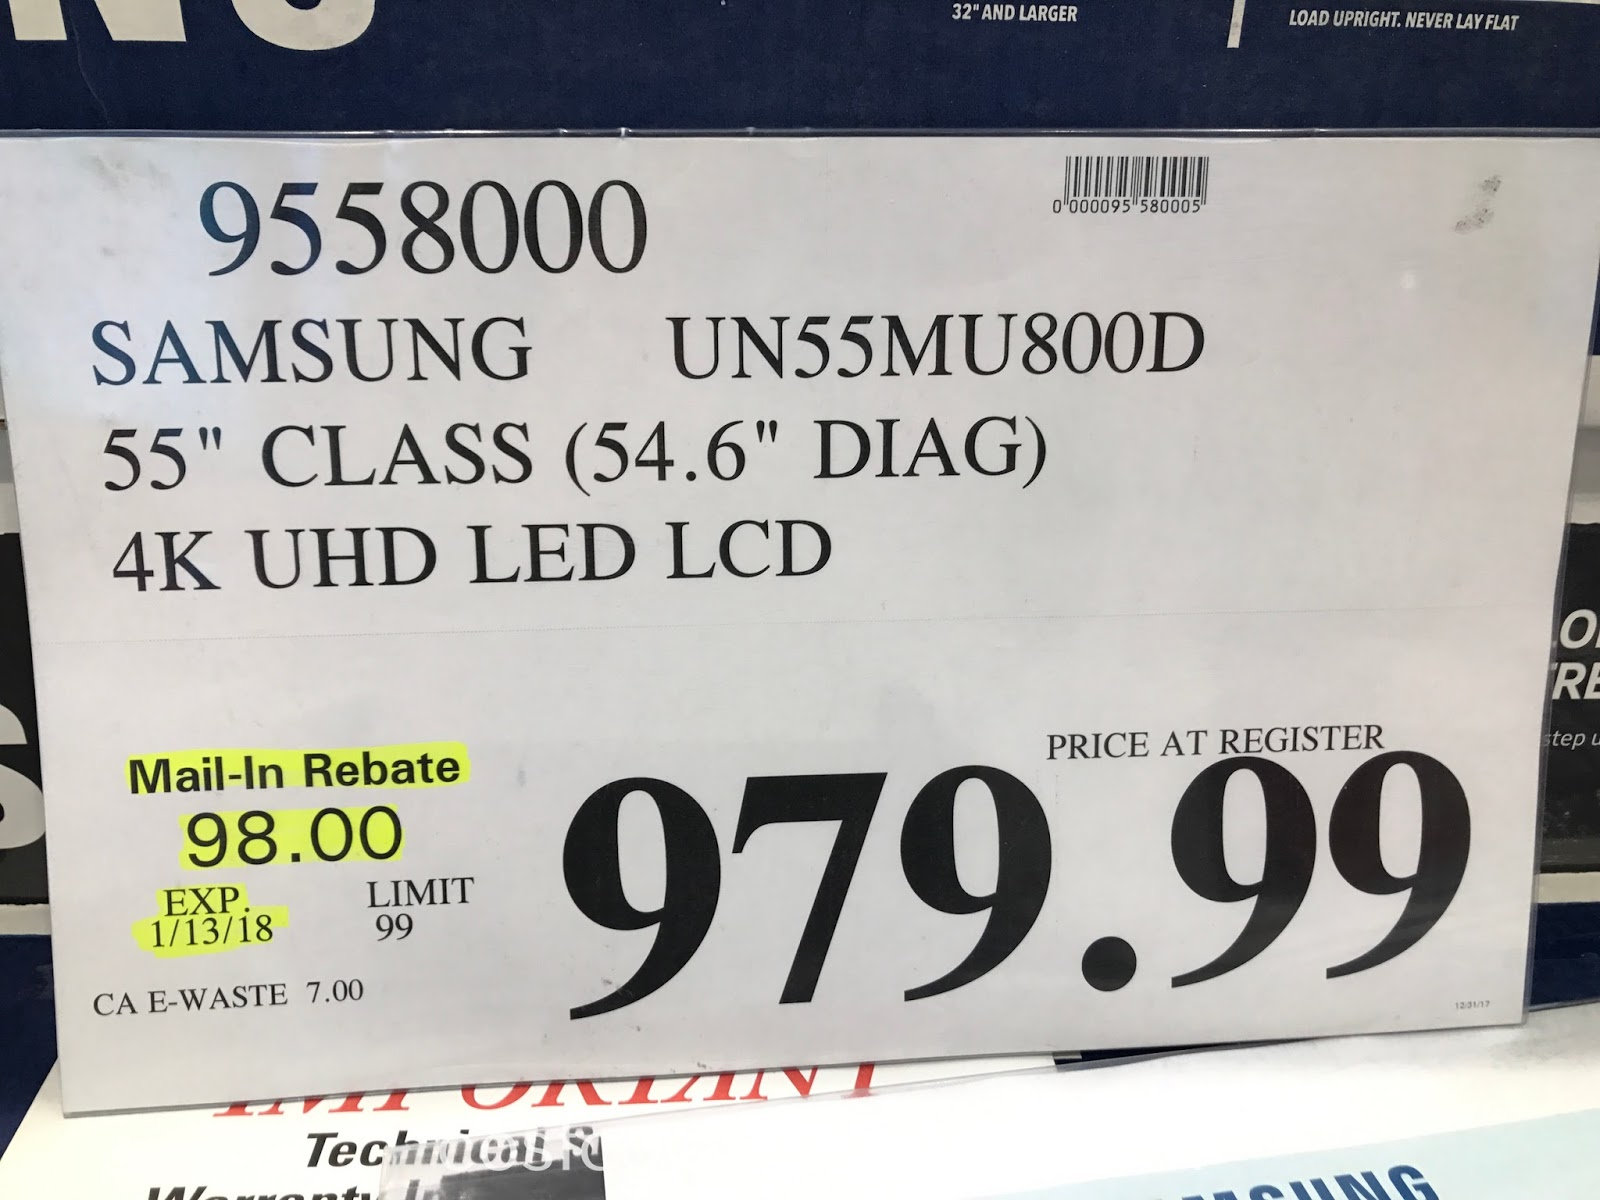 Deal for the Samsung UN55MU800D 55 inch tv at Costco